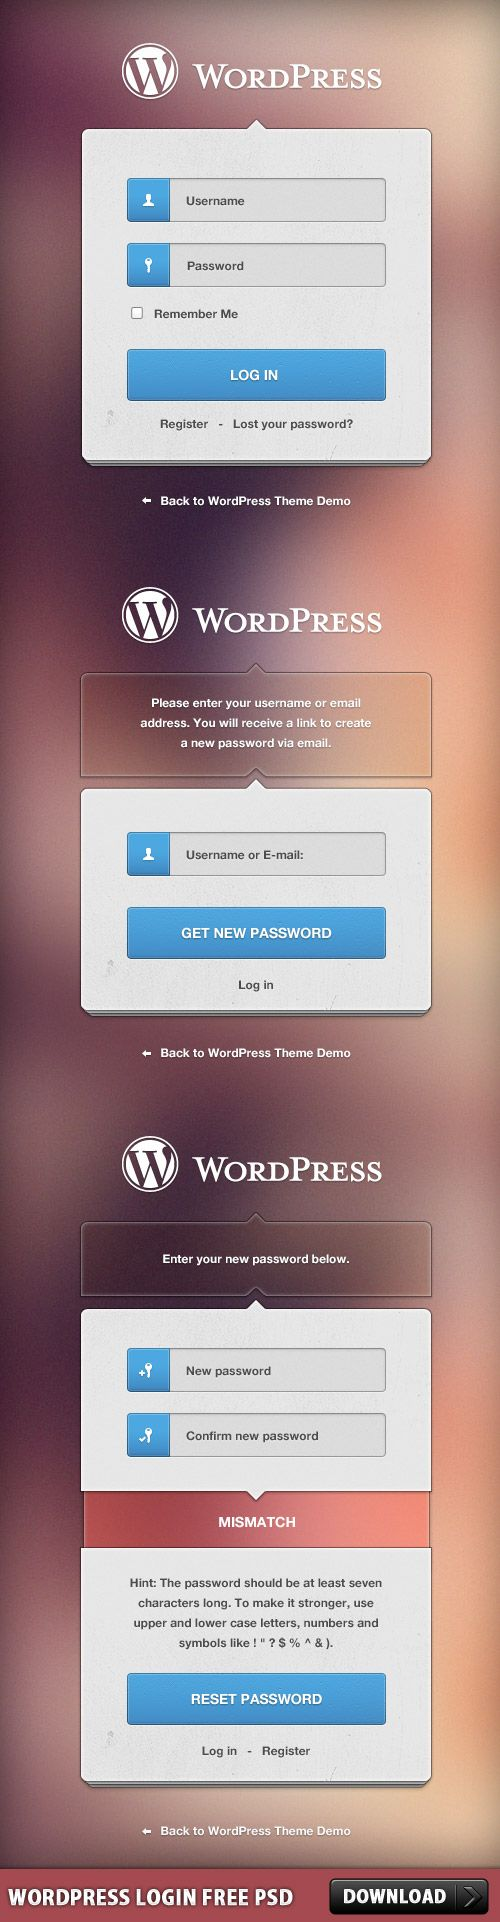 Cool WordPress Login Free PSD. WordPress Login Free PSD file. This will helps you with customization of login/register WordPress form. Download this amazing PSD play around feel FREE to use it in any commercial project you want. Enjoy!  #Custom #customizable #design #downloadpsd #elements #File #free #freepsd #gui #images #login #psd #resources #Sources #template #templates #theme #user #web #wordpress #www Check more at http://psdfinder.com/free-psd/wordpress-login-free-psd